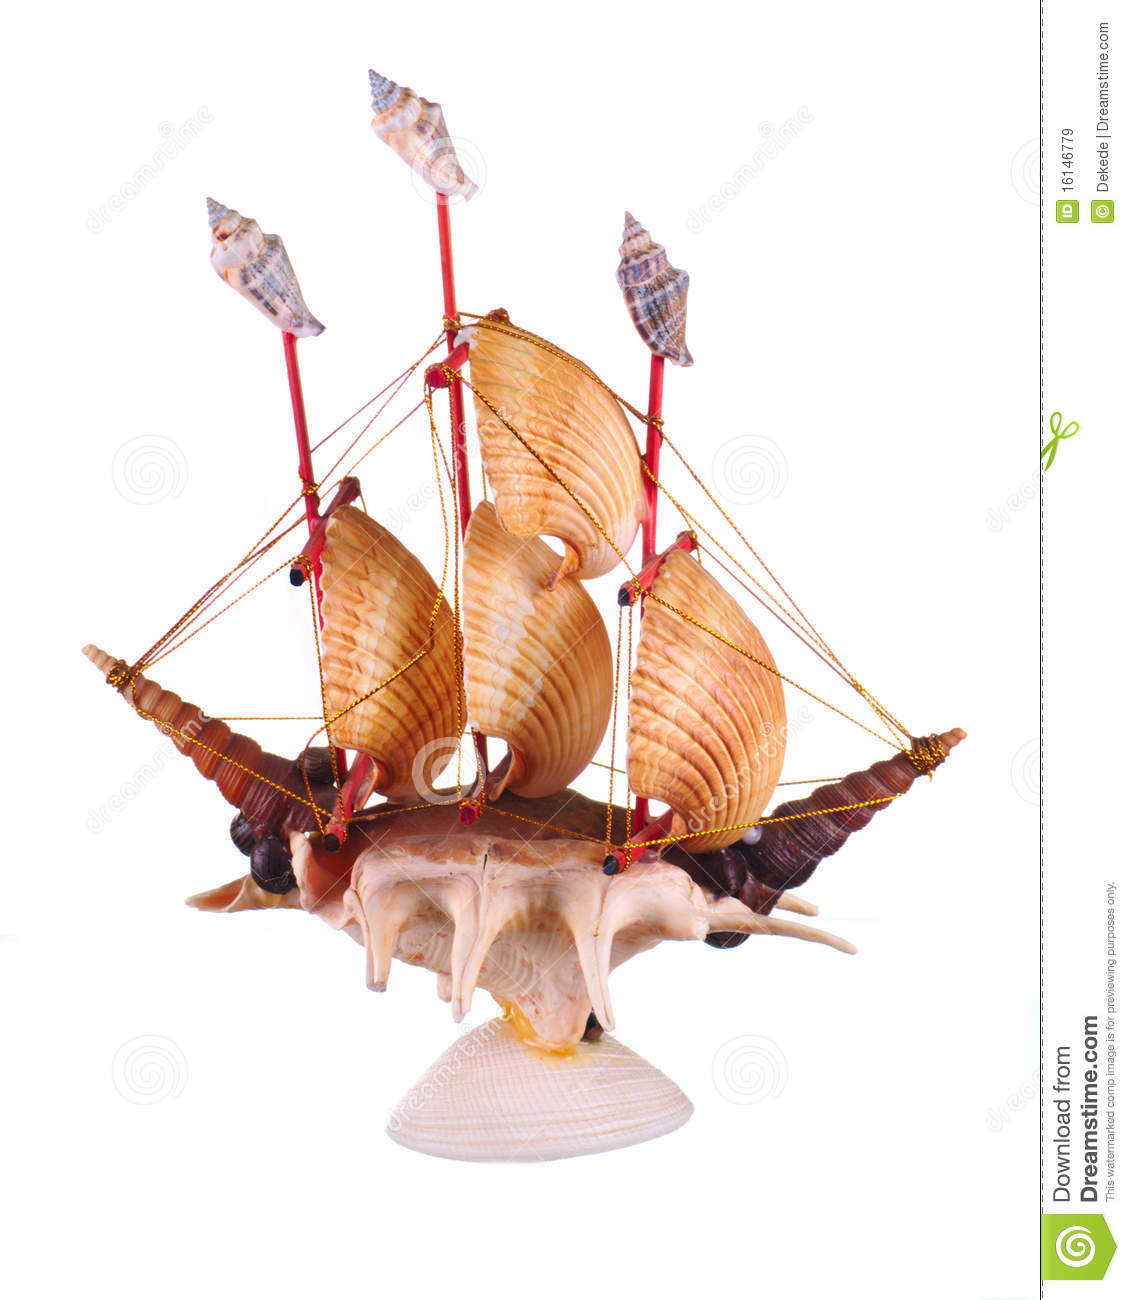 Royalty free stock images boat made of shells image for What are shells made of